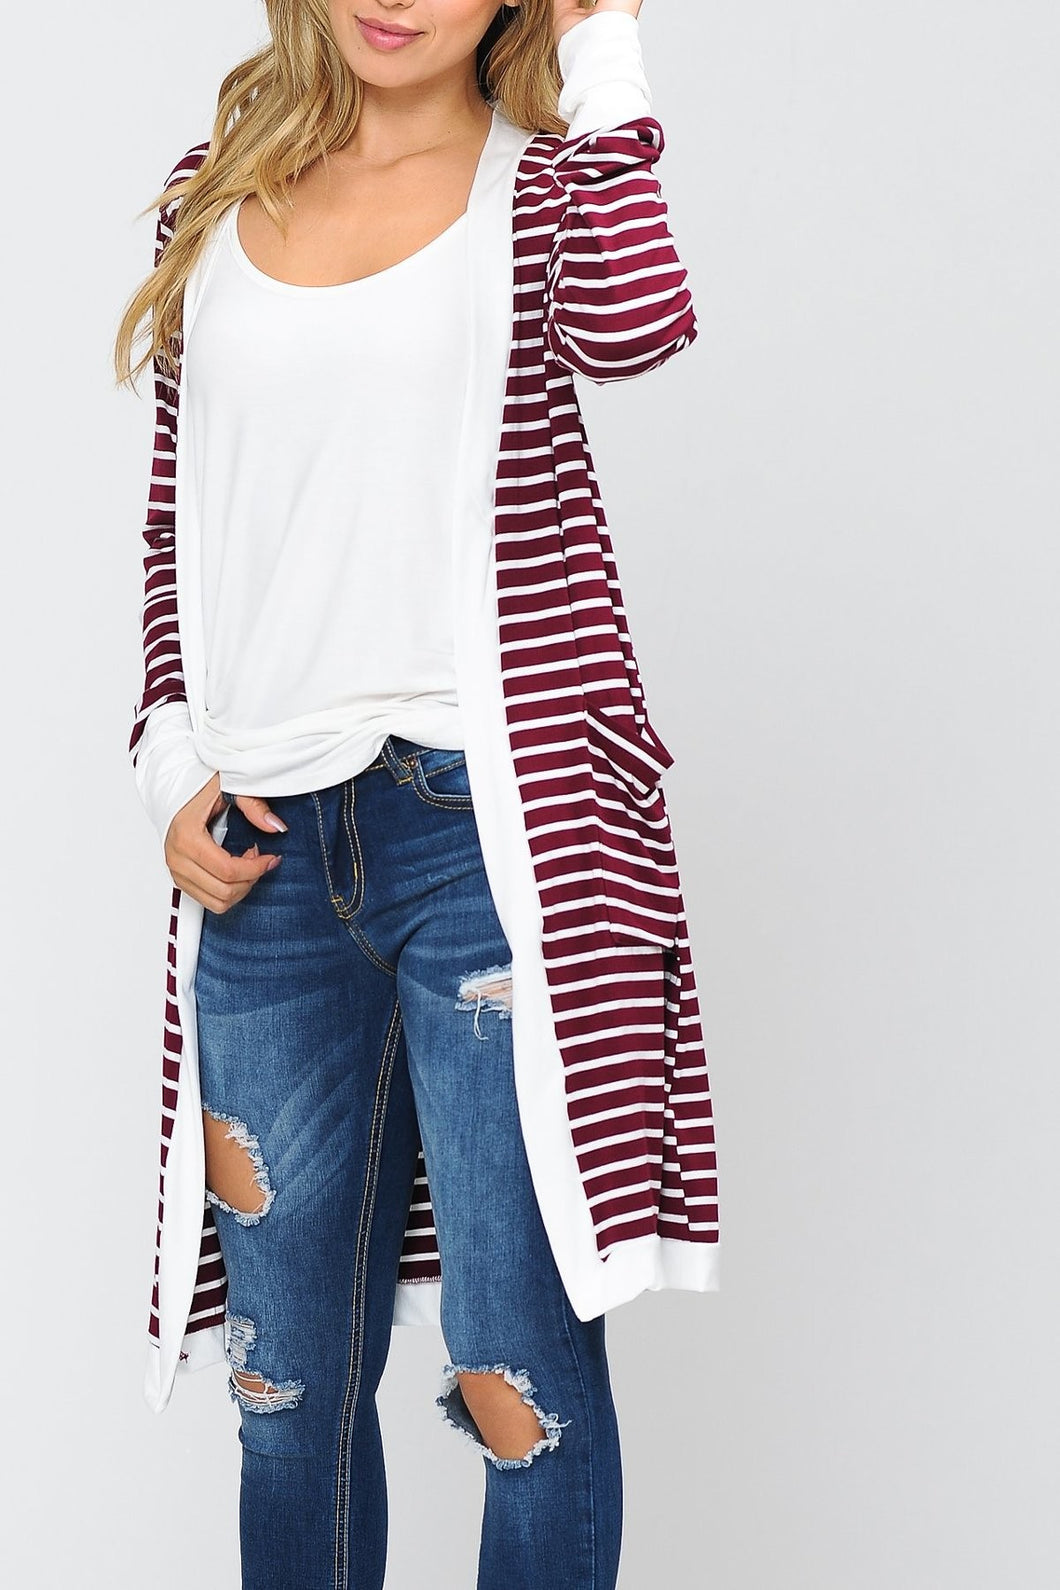 STRIPED CARDIGAN - MULTIPLE COLORS